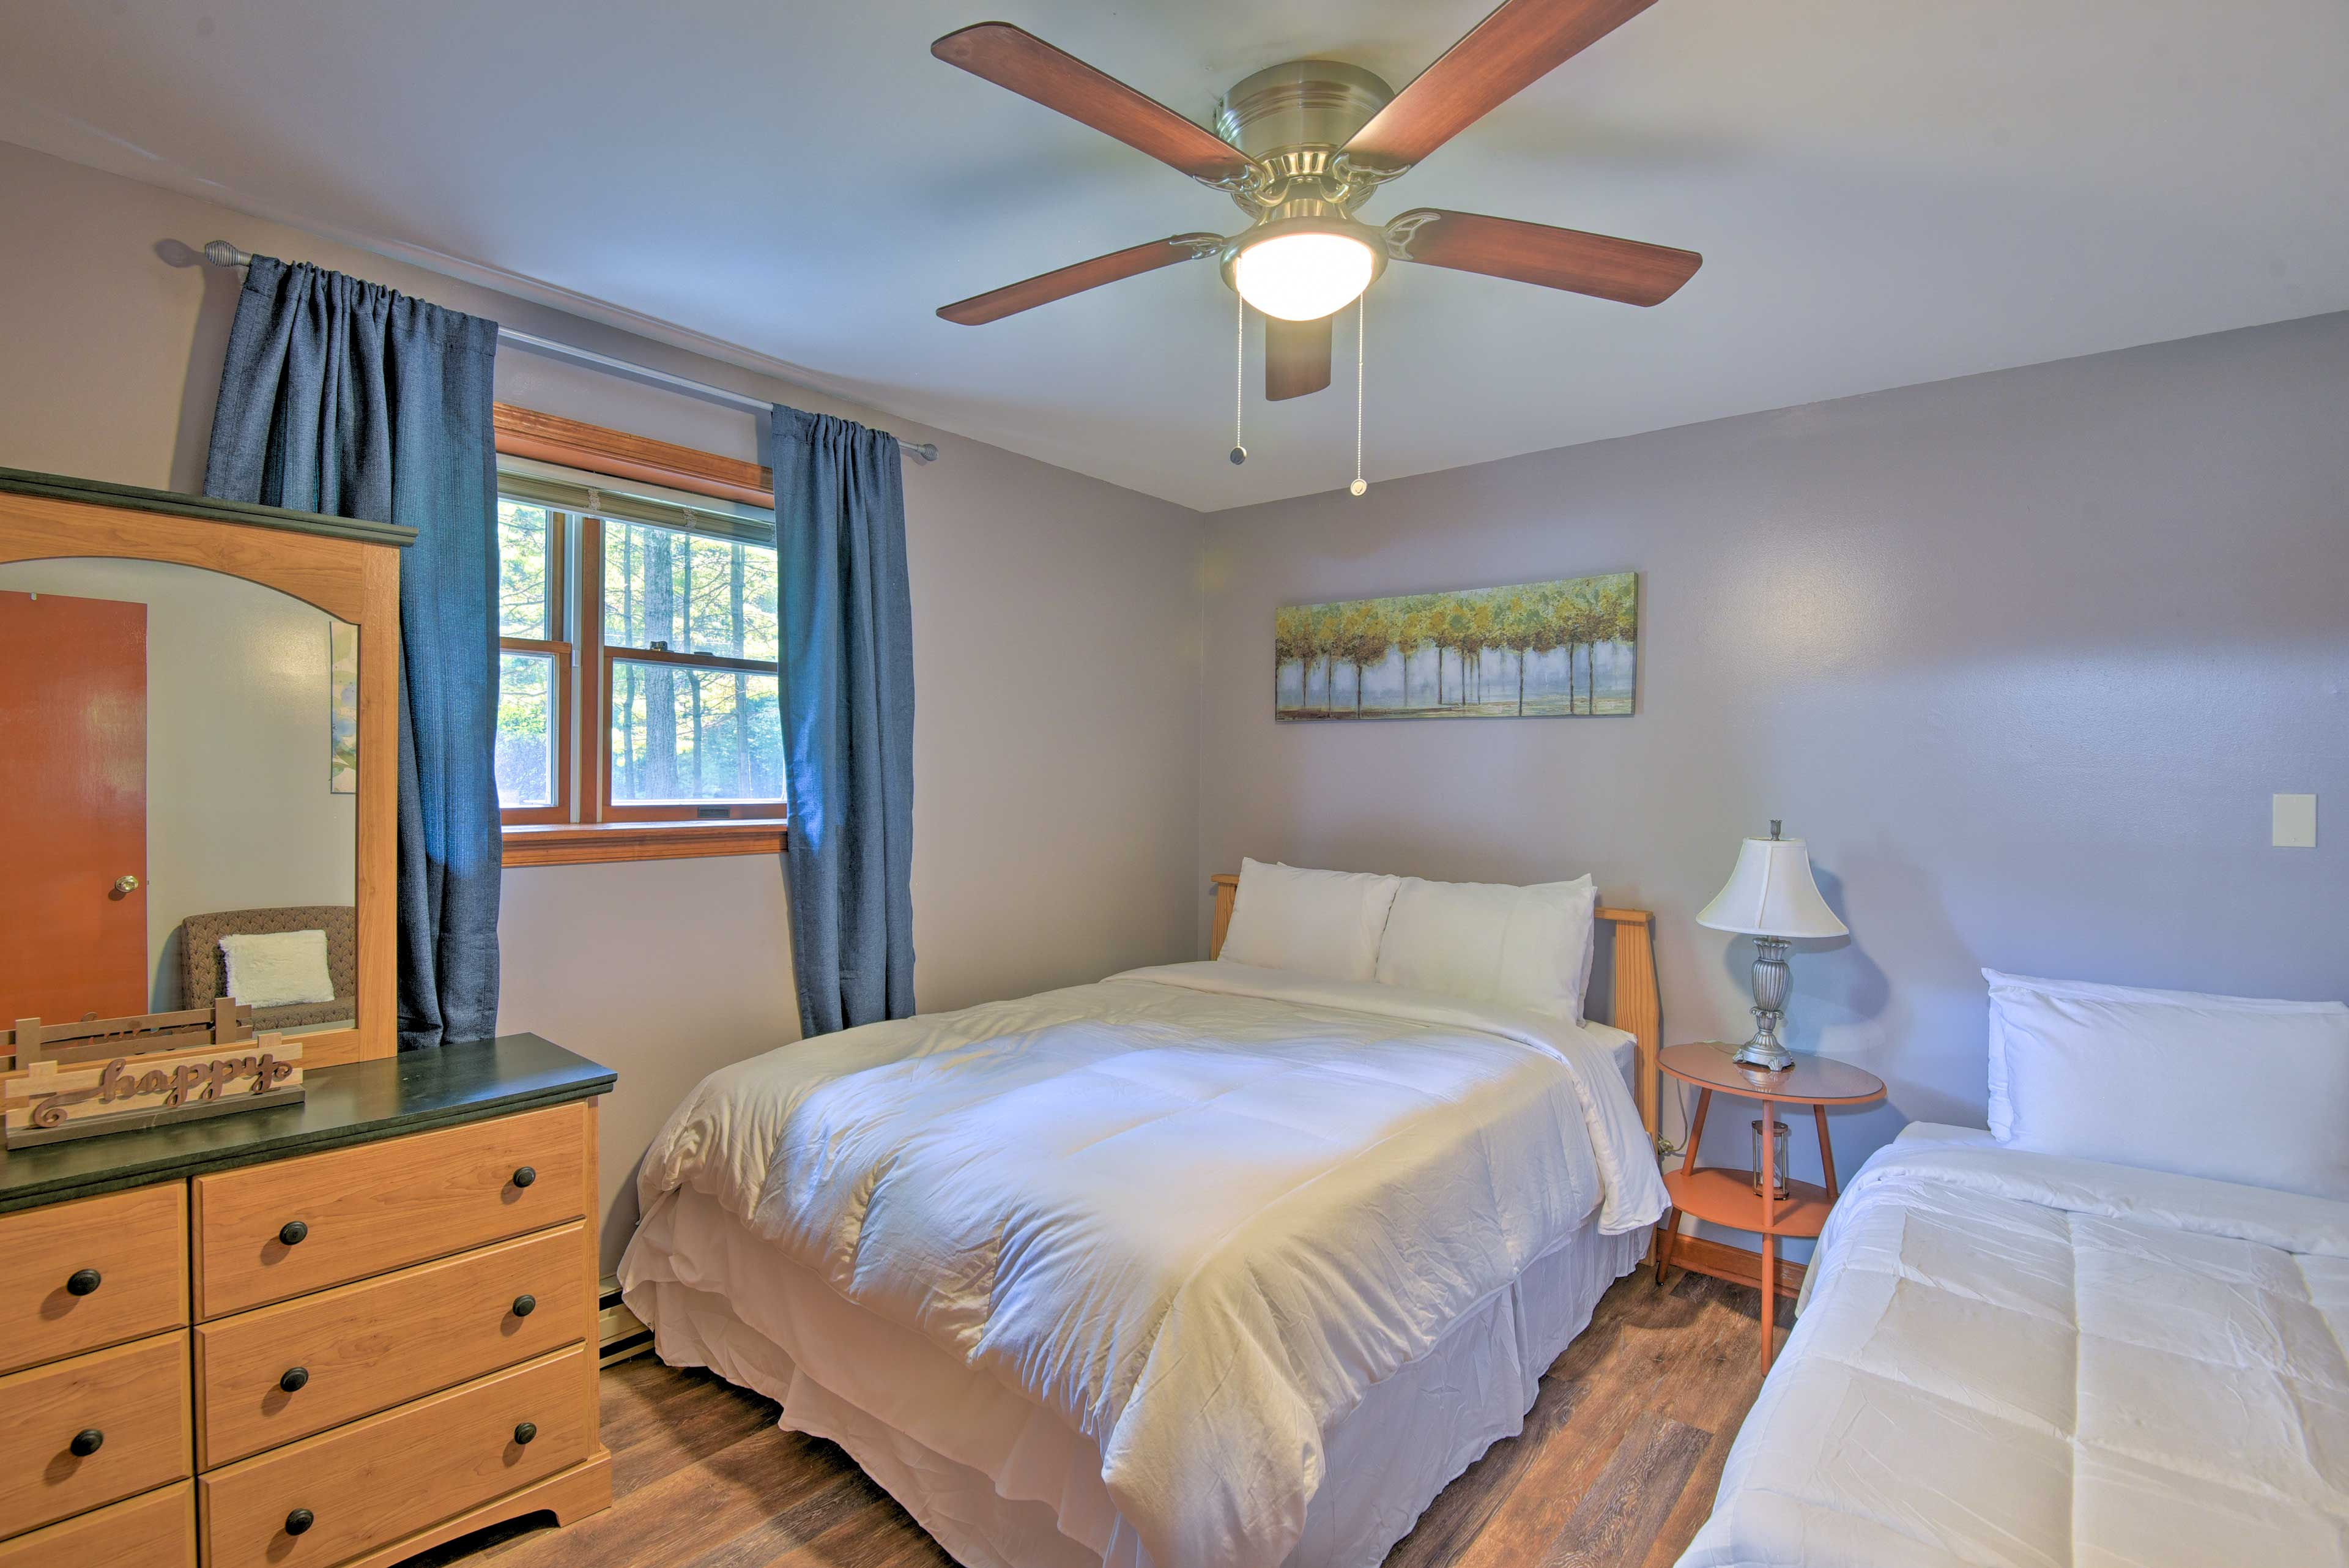 This bedroom will sleep 3 with a full and twin-sized bed.